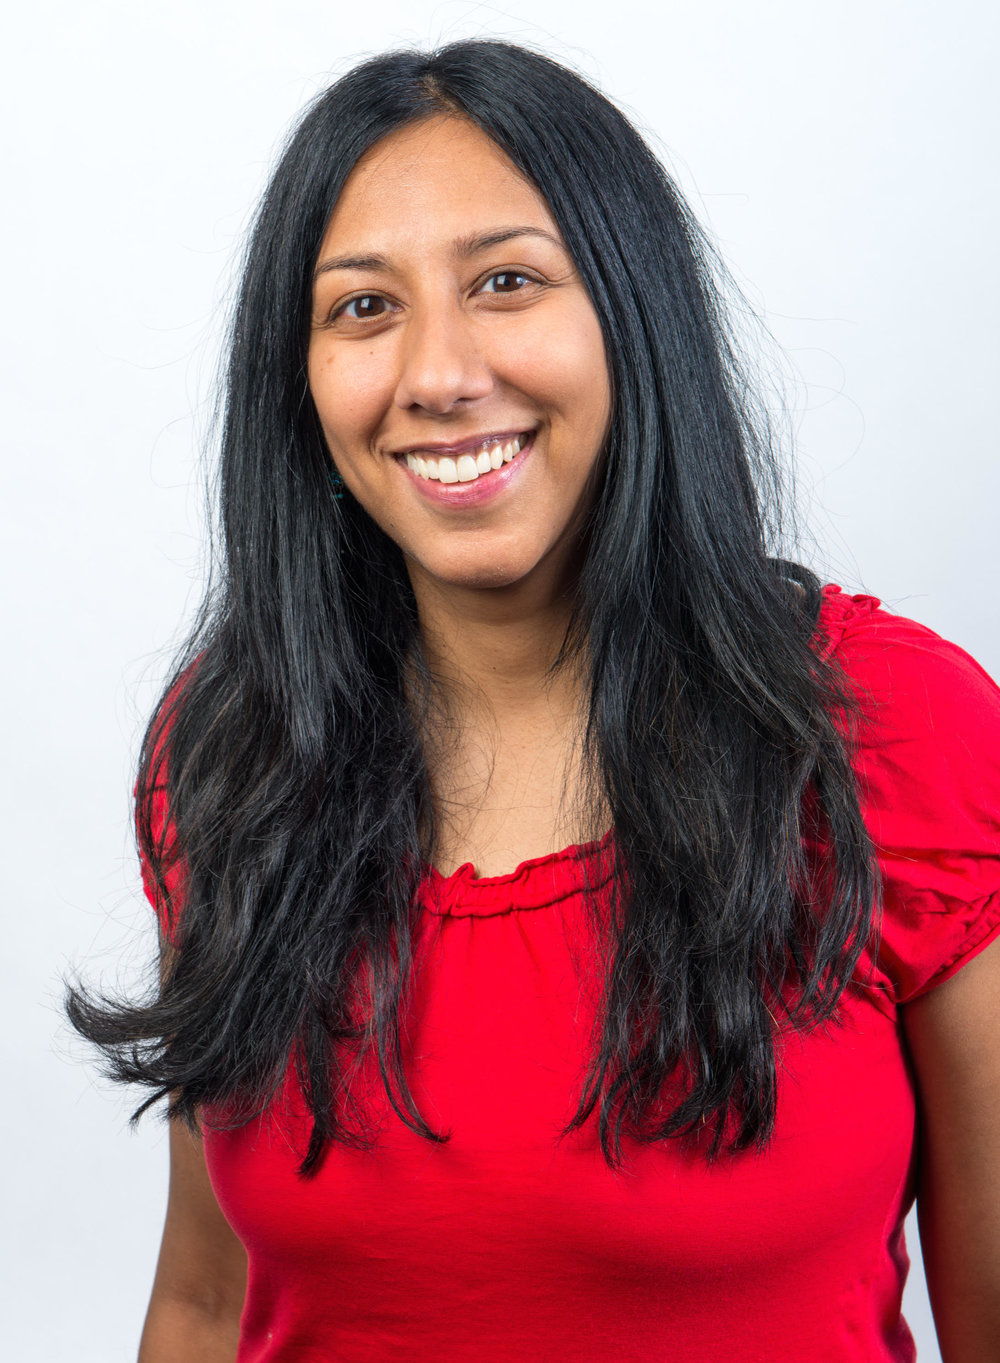 Reshema Gopaldas - Head of Video, SheKnows Media